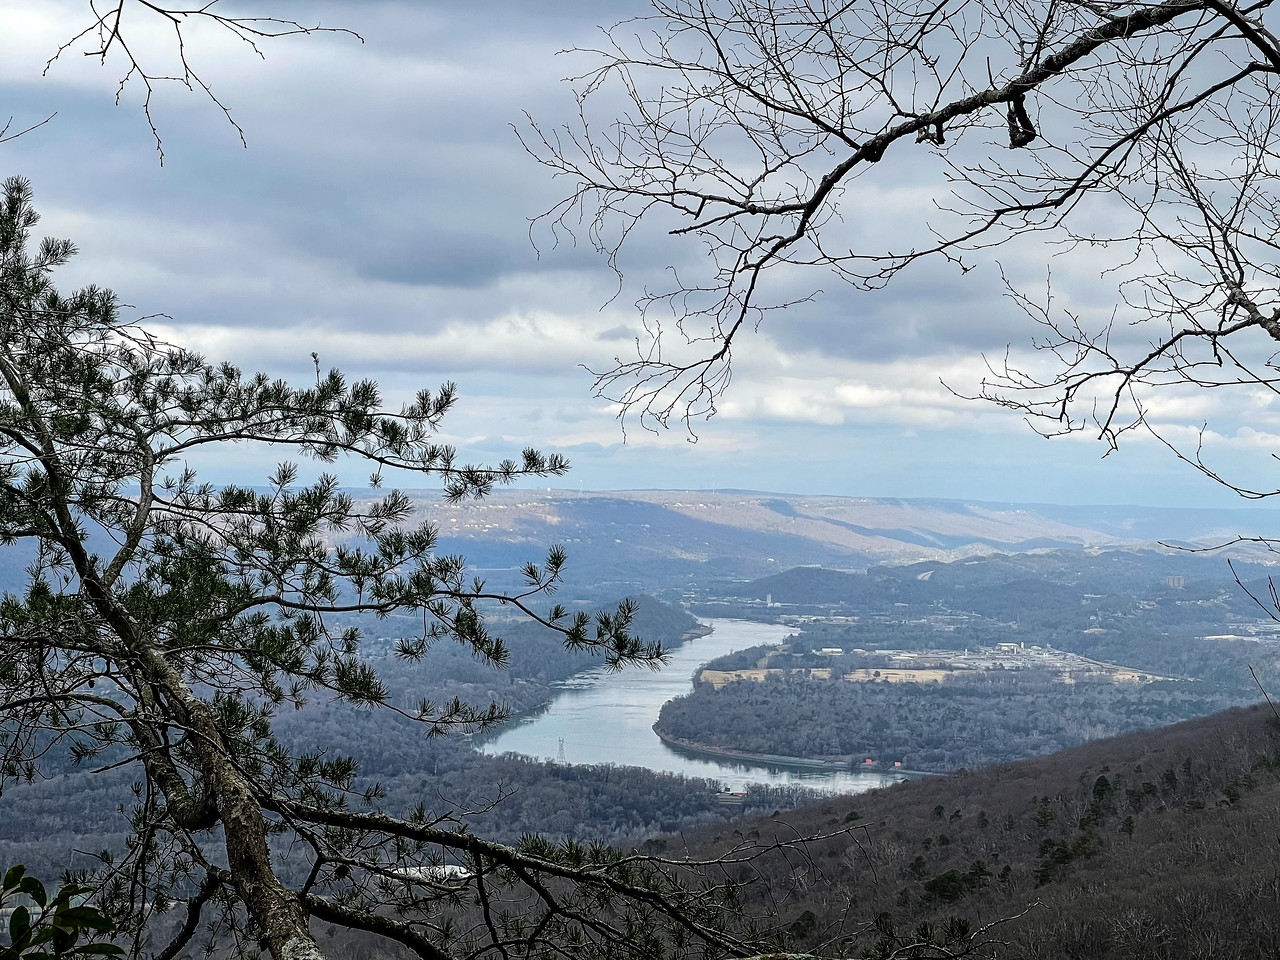 A view of the river from the mountain.